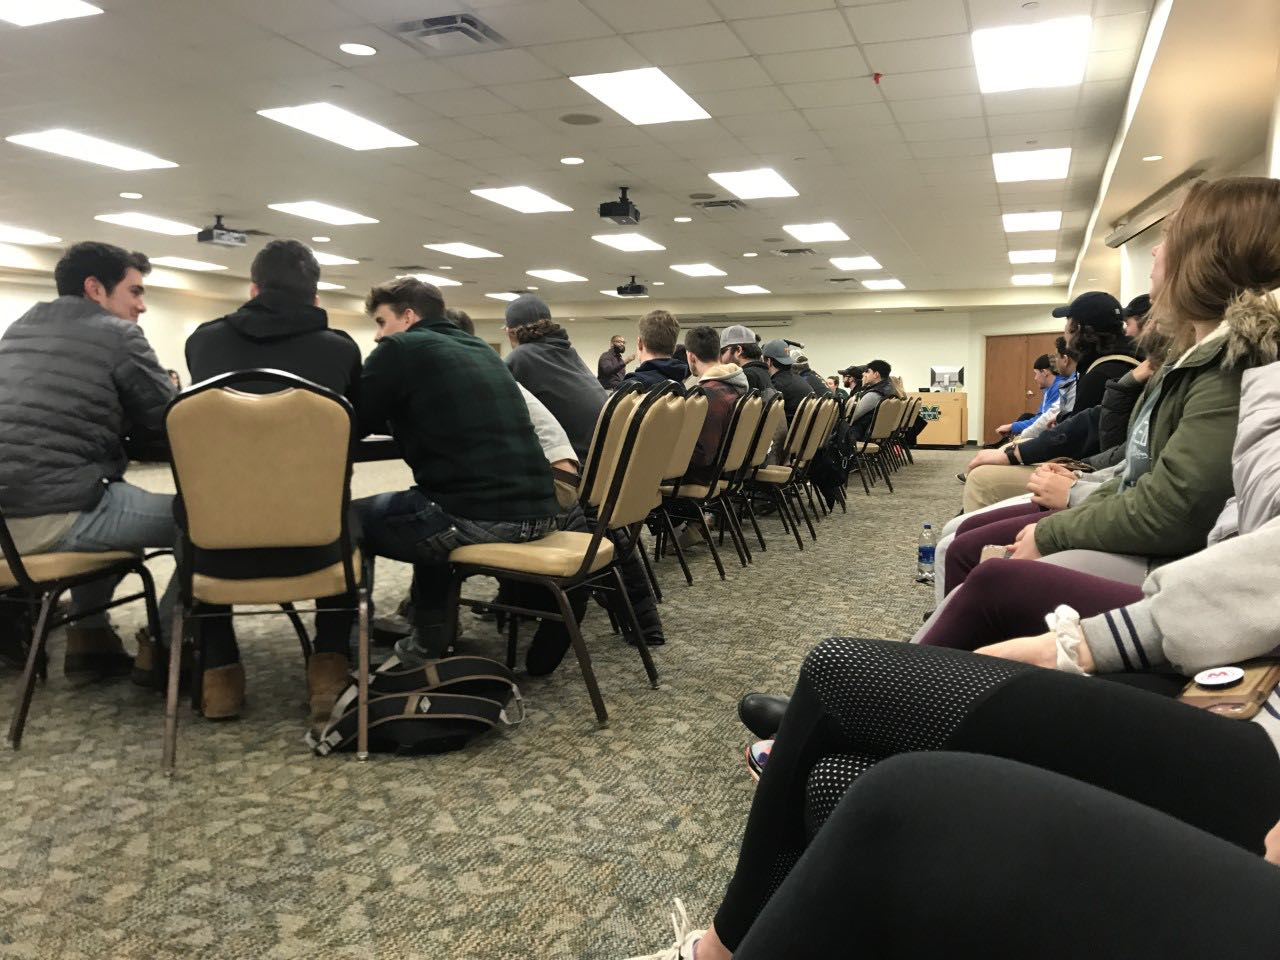 Dozens of fraternity and sorority members attended sober monitor training to learn how to facilitate safe social events, Thursday at the Student Center.